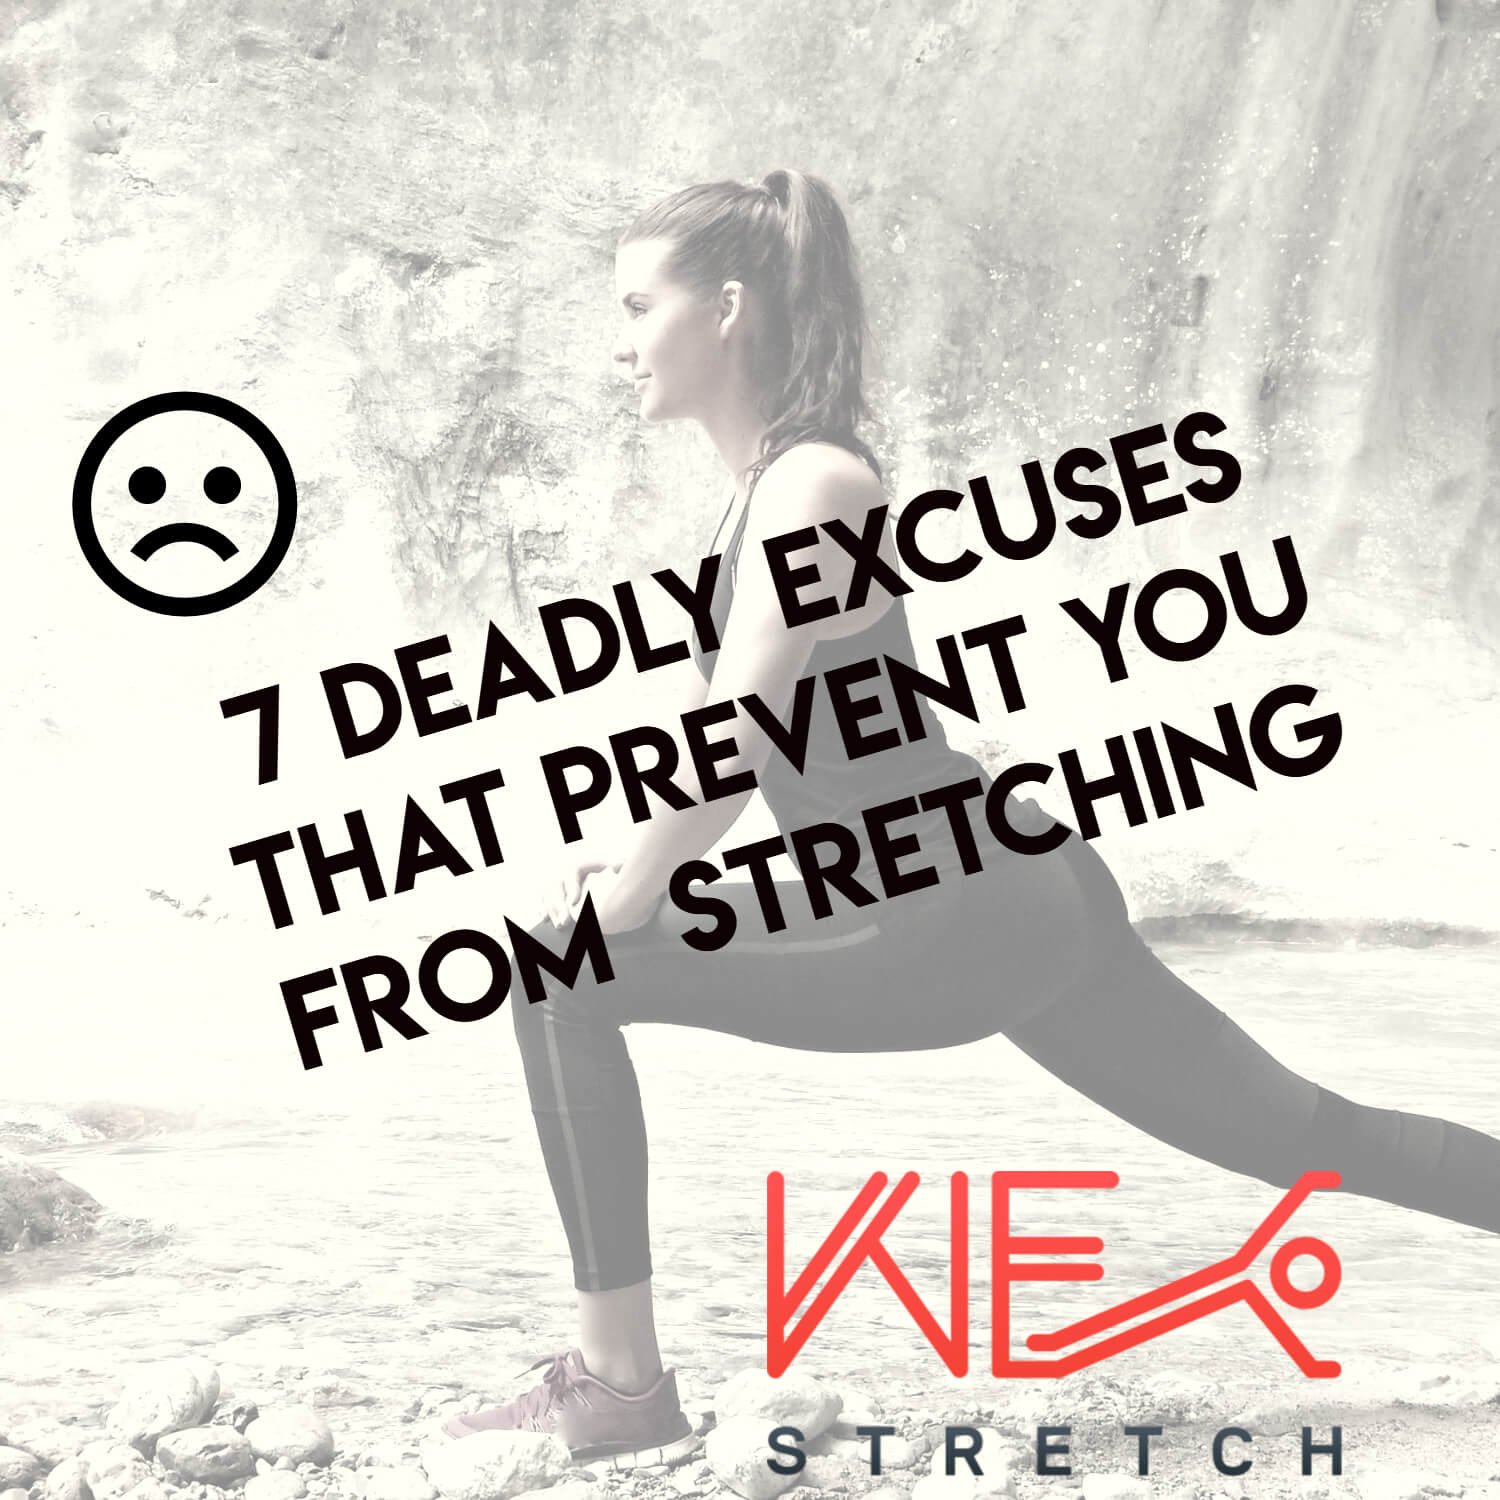 The 7 Deadly Excuses That Prevent You From Stretching